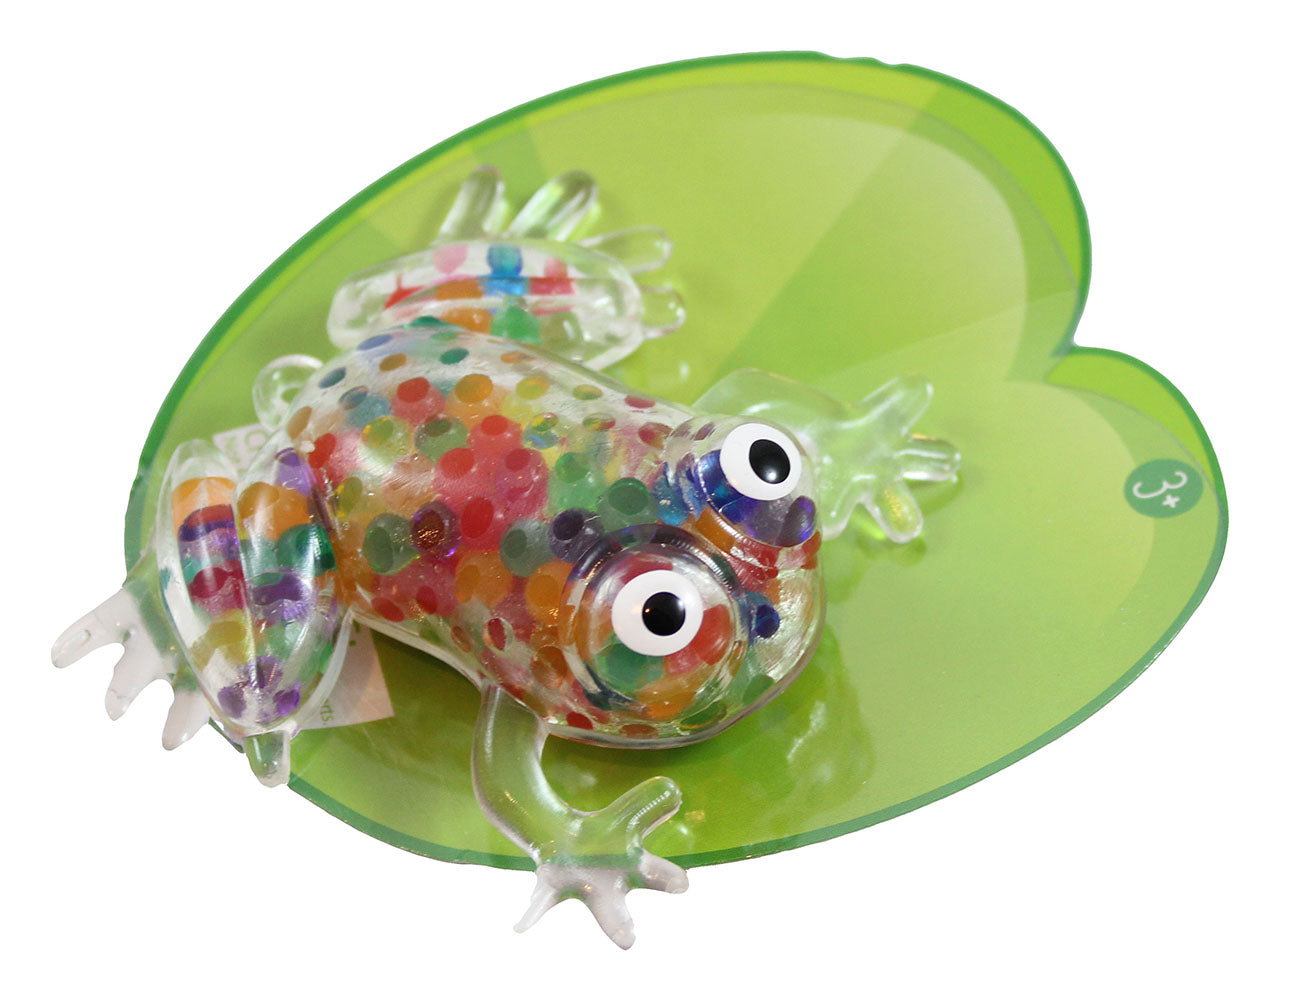 Frog Rainbow Water Bead Filled Squeeze Stress Ball  -  Sensory, Stress, Fidget Toy